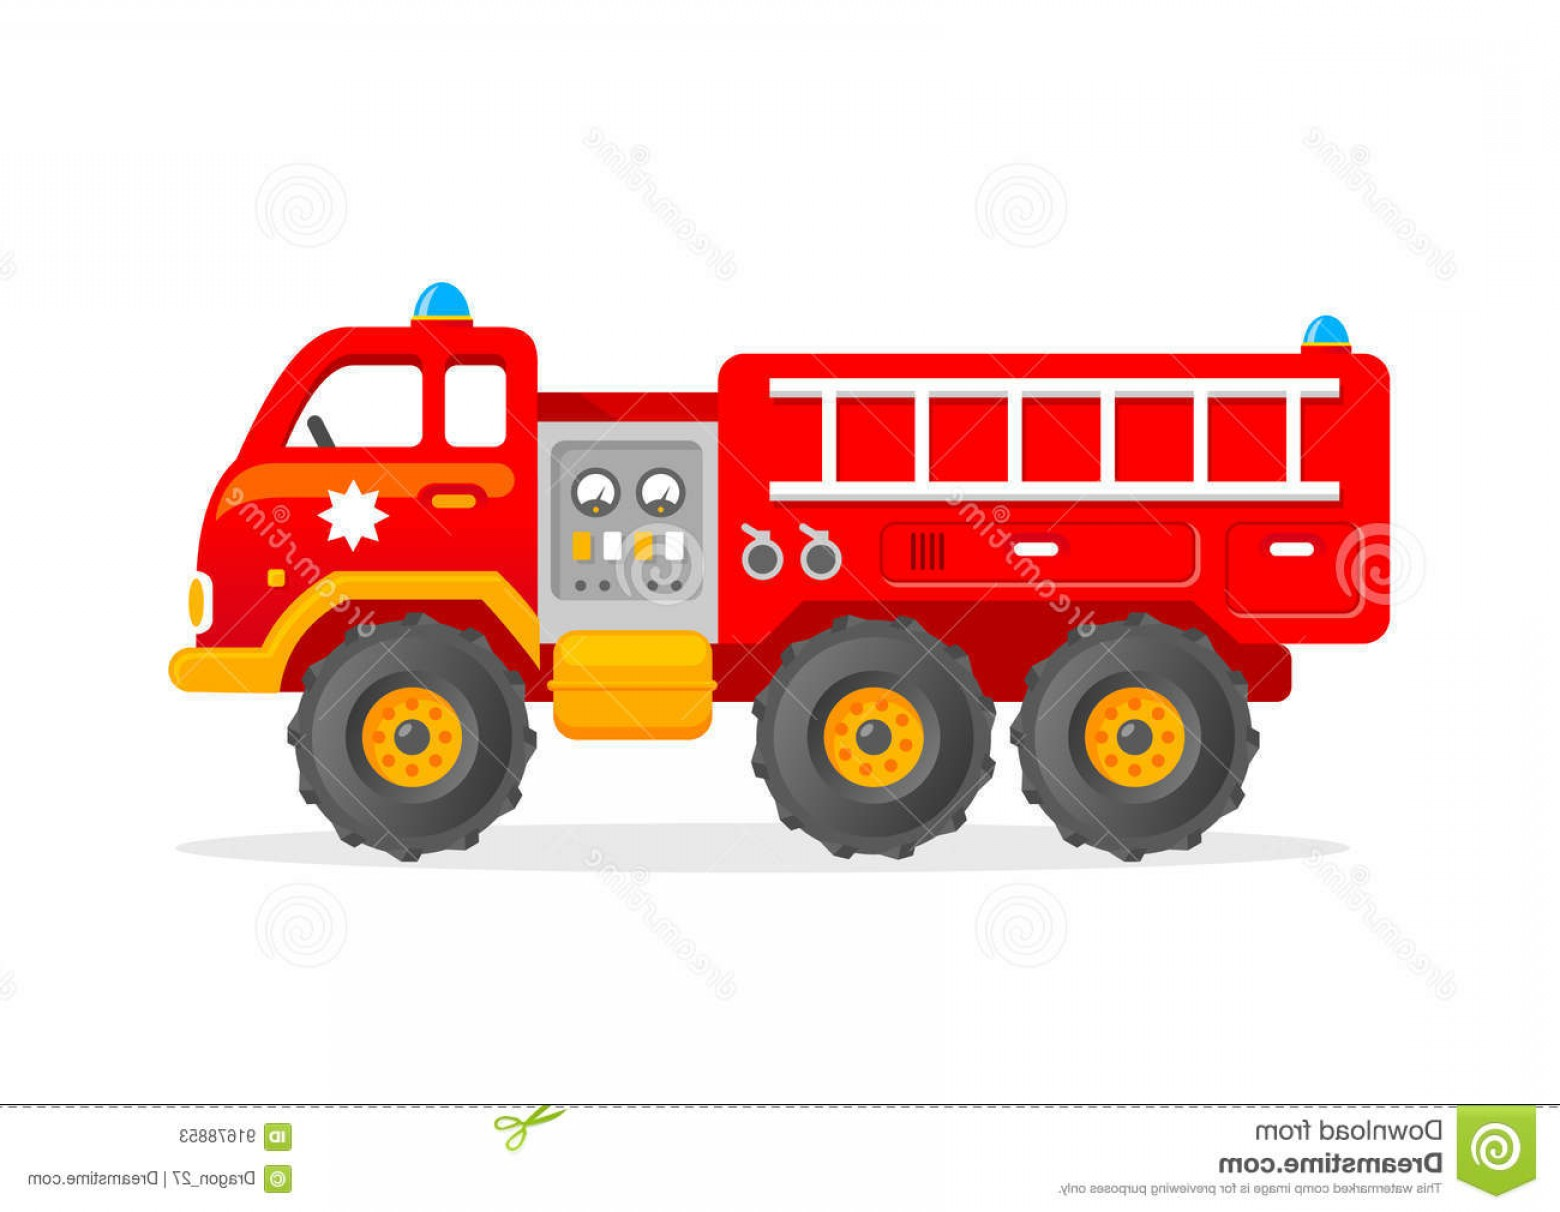 Fire Truck Vector Art: Stock Illustration Cartoon Toy Firetruck Vector Illustration Red Firefighter Car Funny Clipart Kids Image